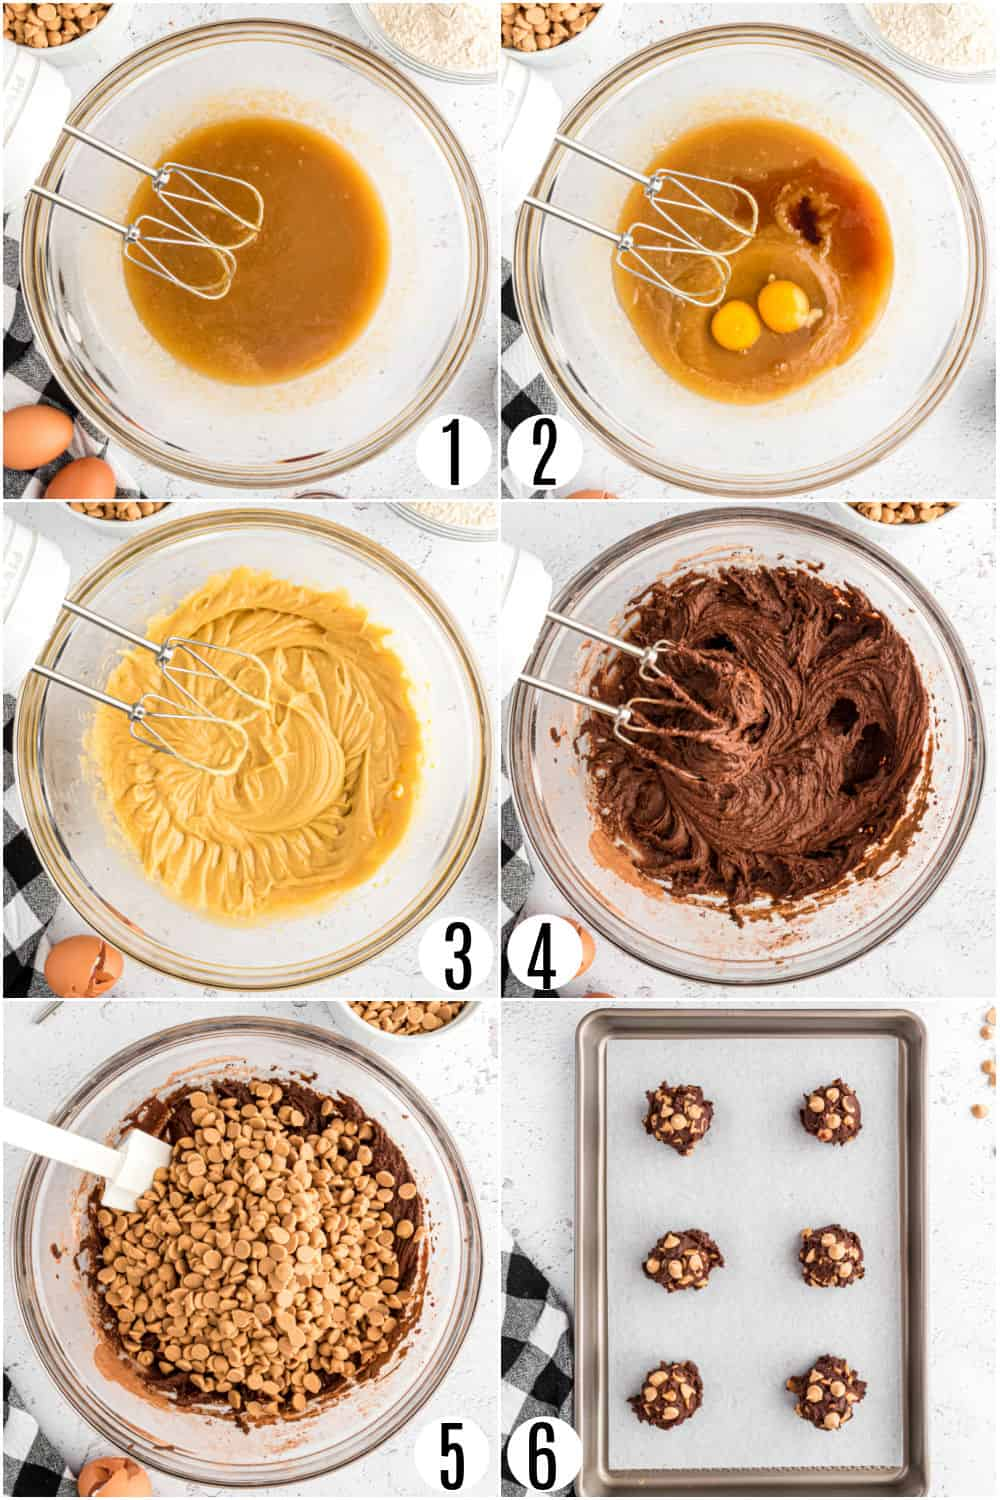 Step by step photos showing how to make chocolate peanut butter cookies.